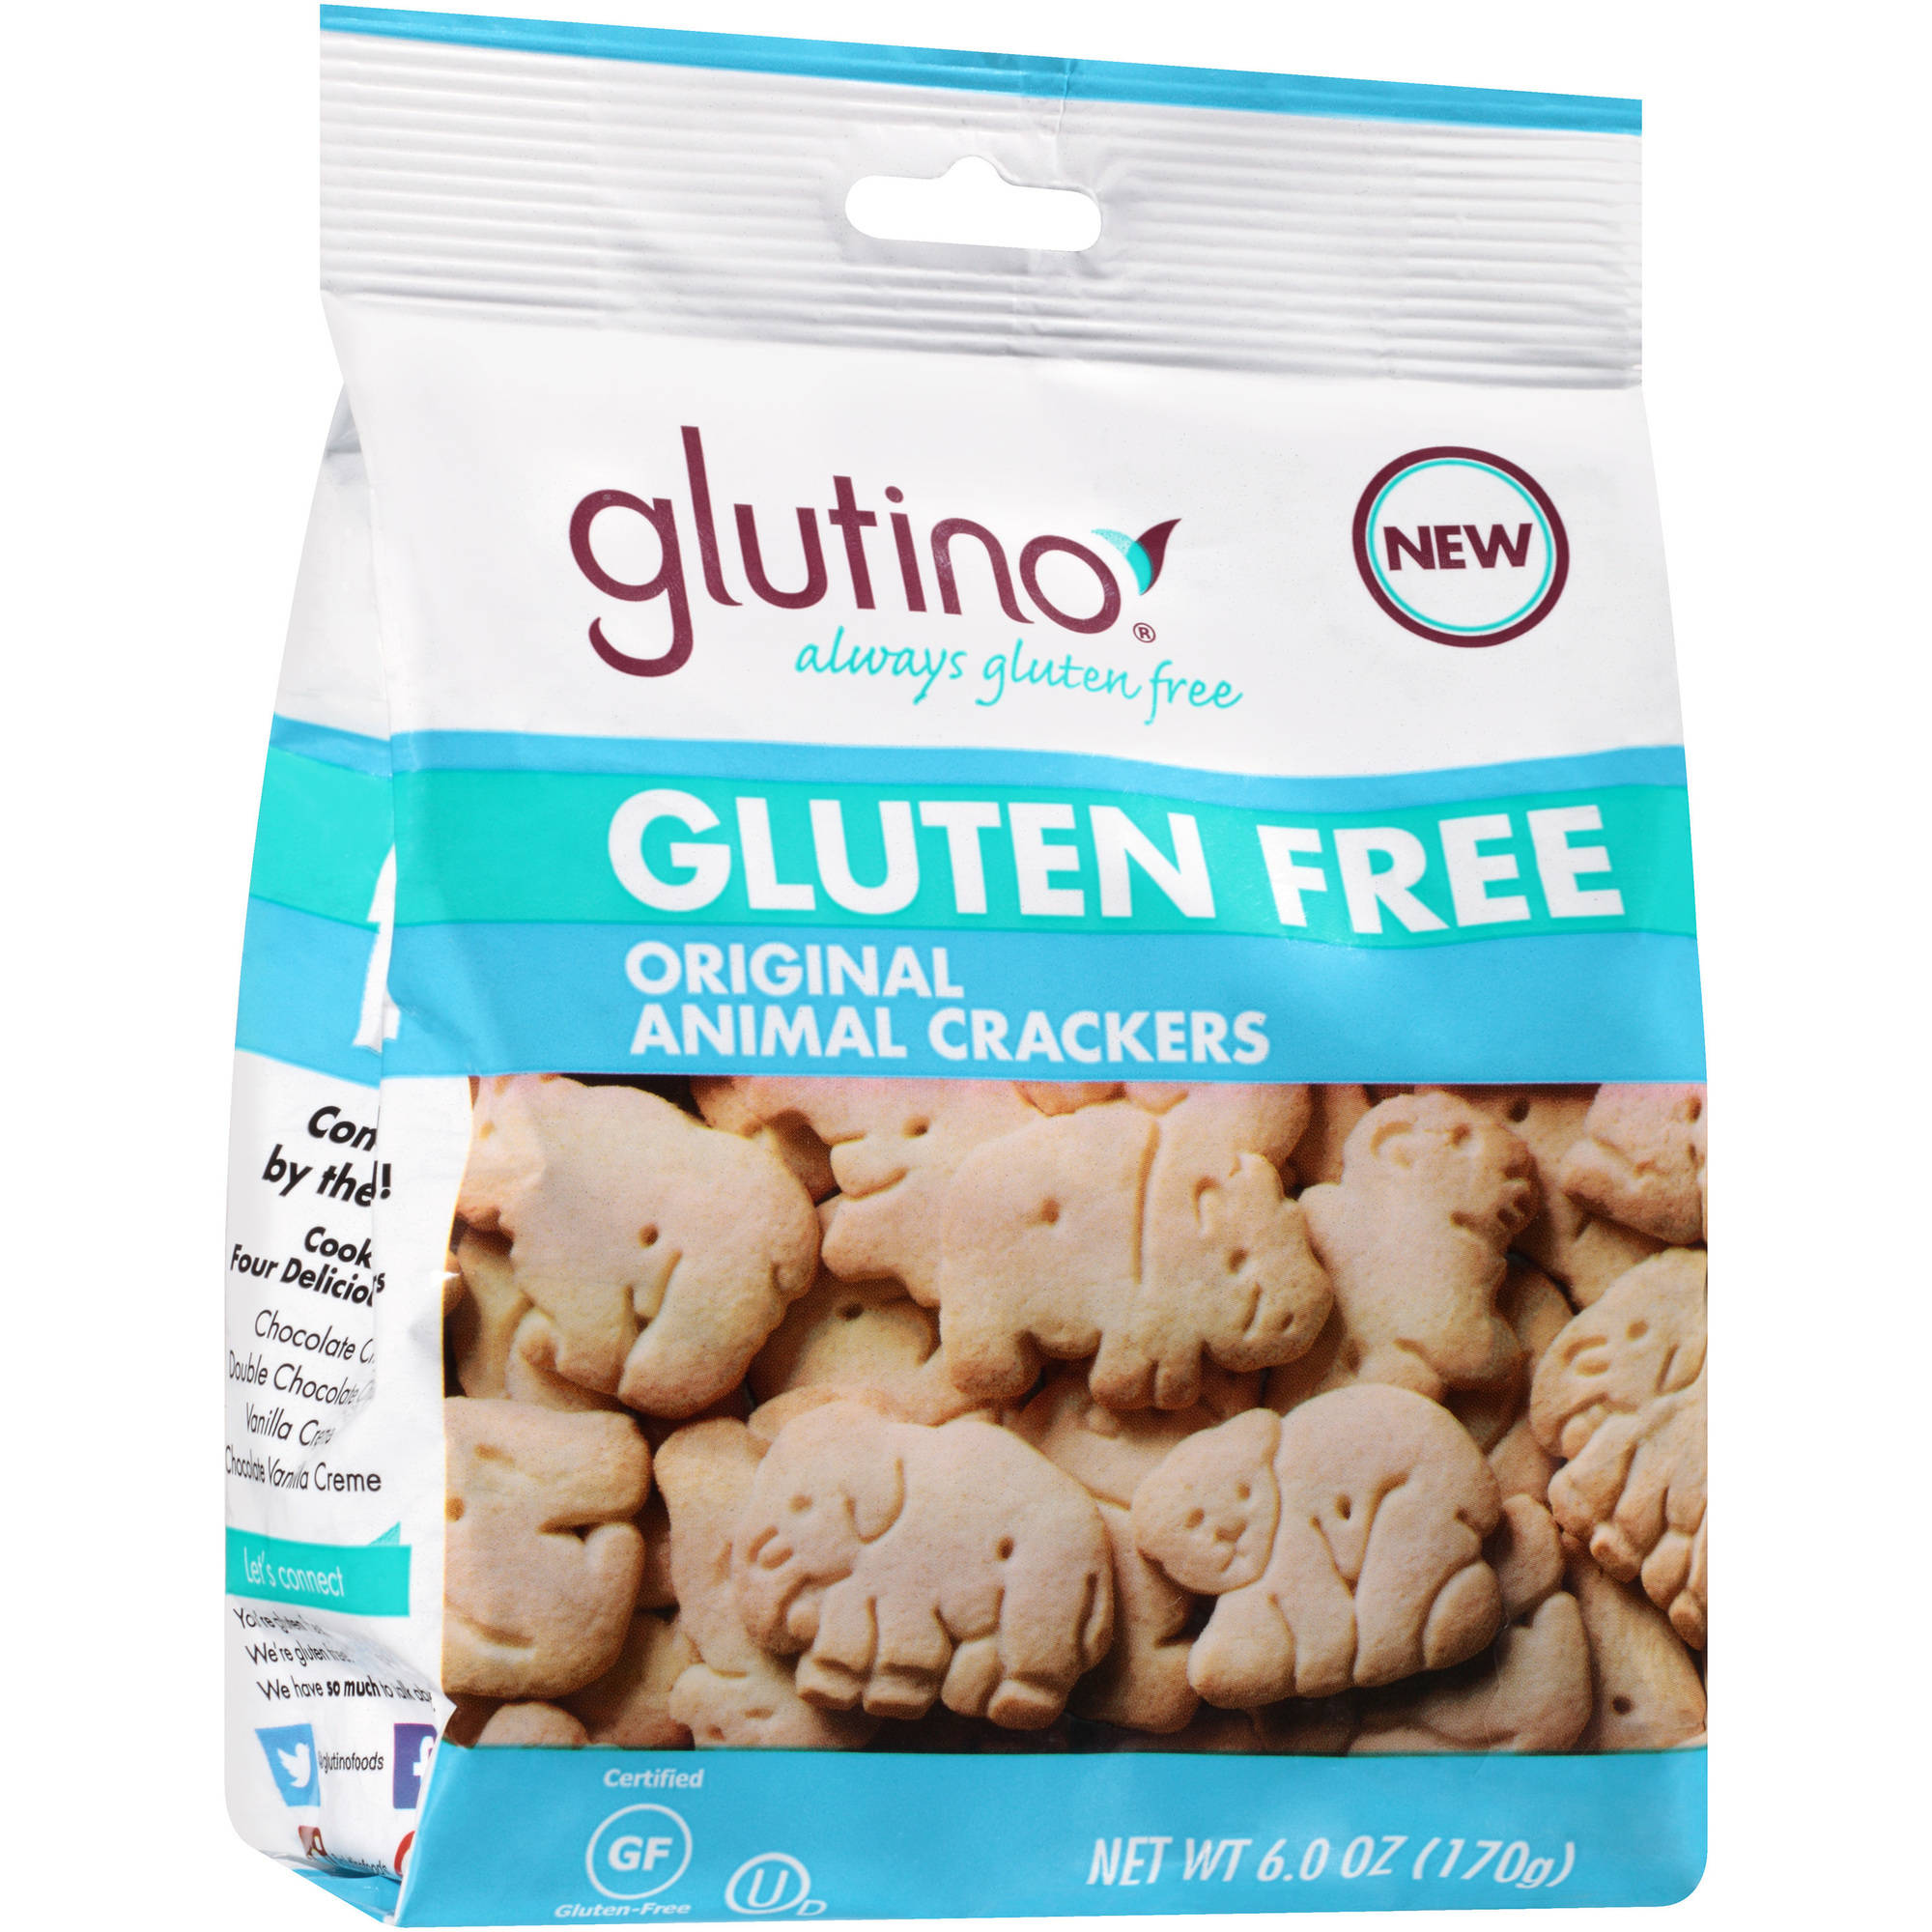 Glutino Gluten Free Original Animal Crackers, 6 oz